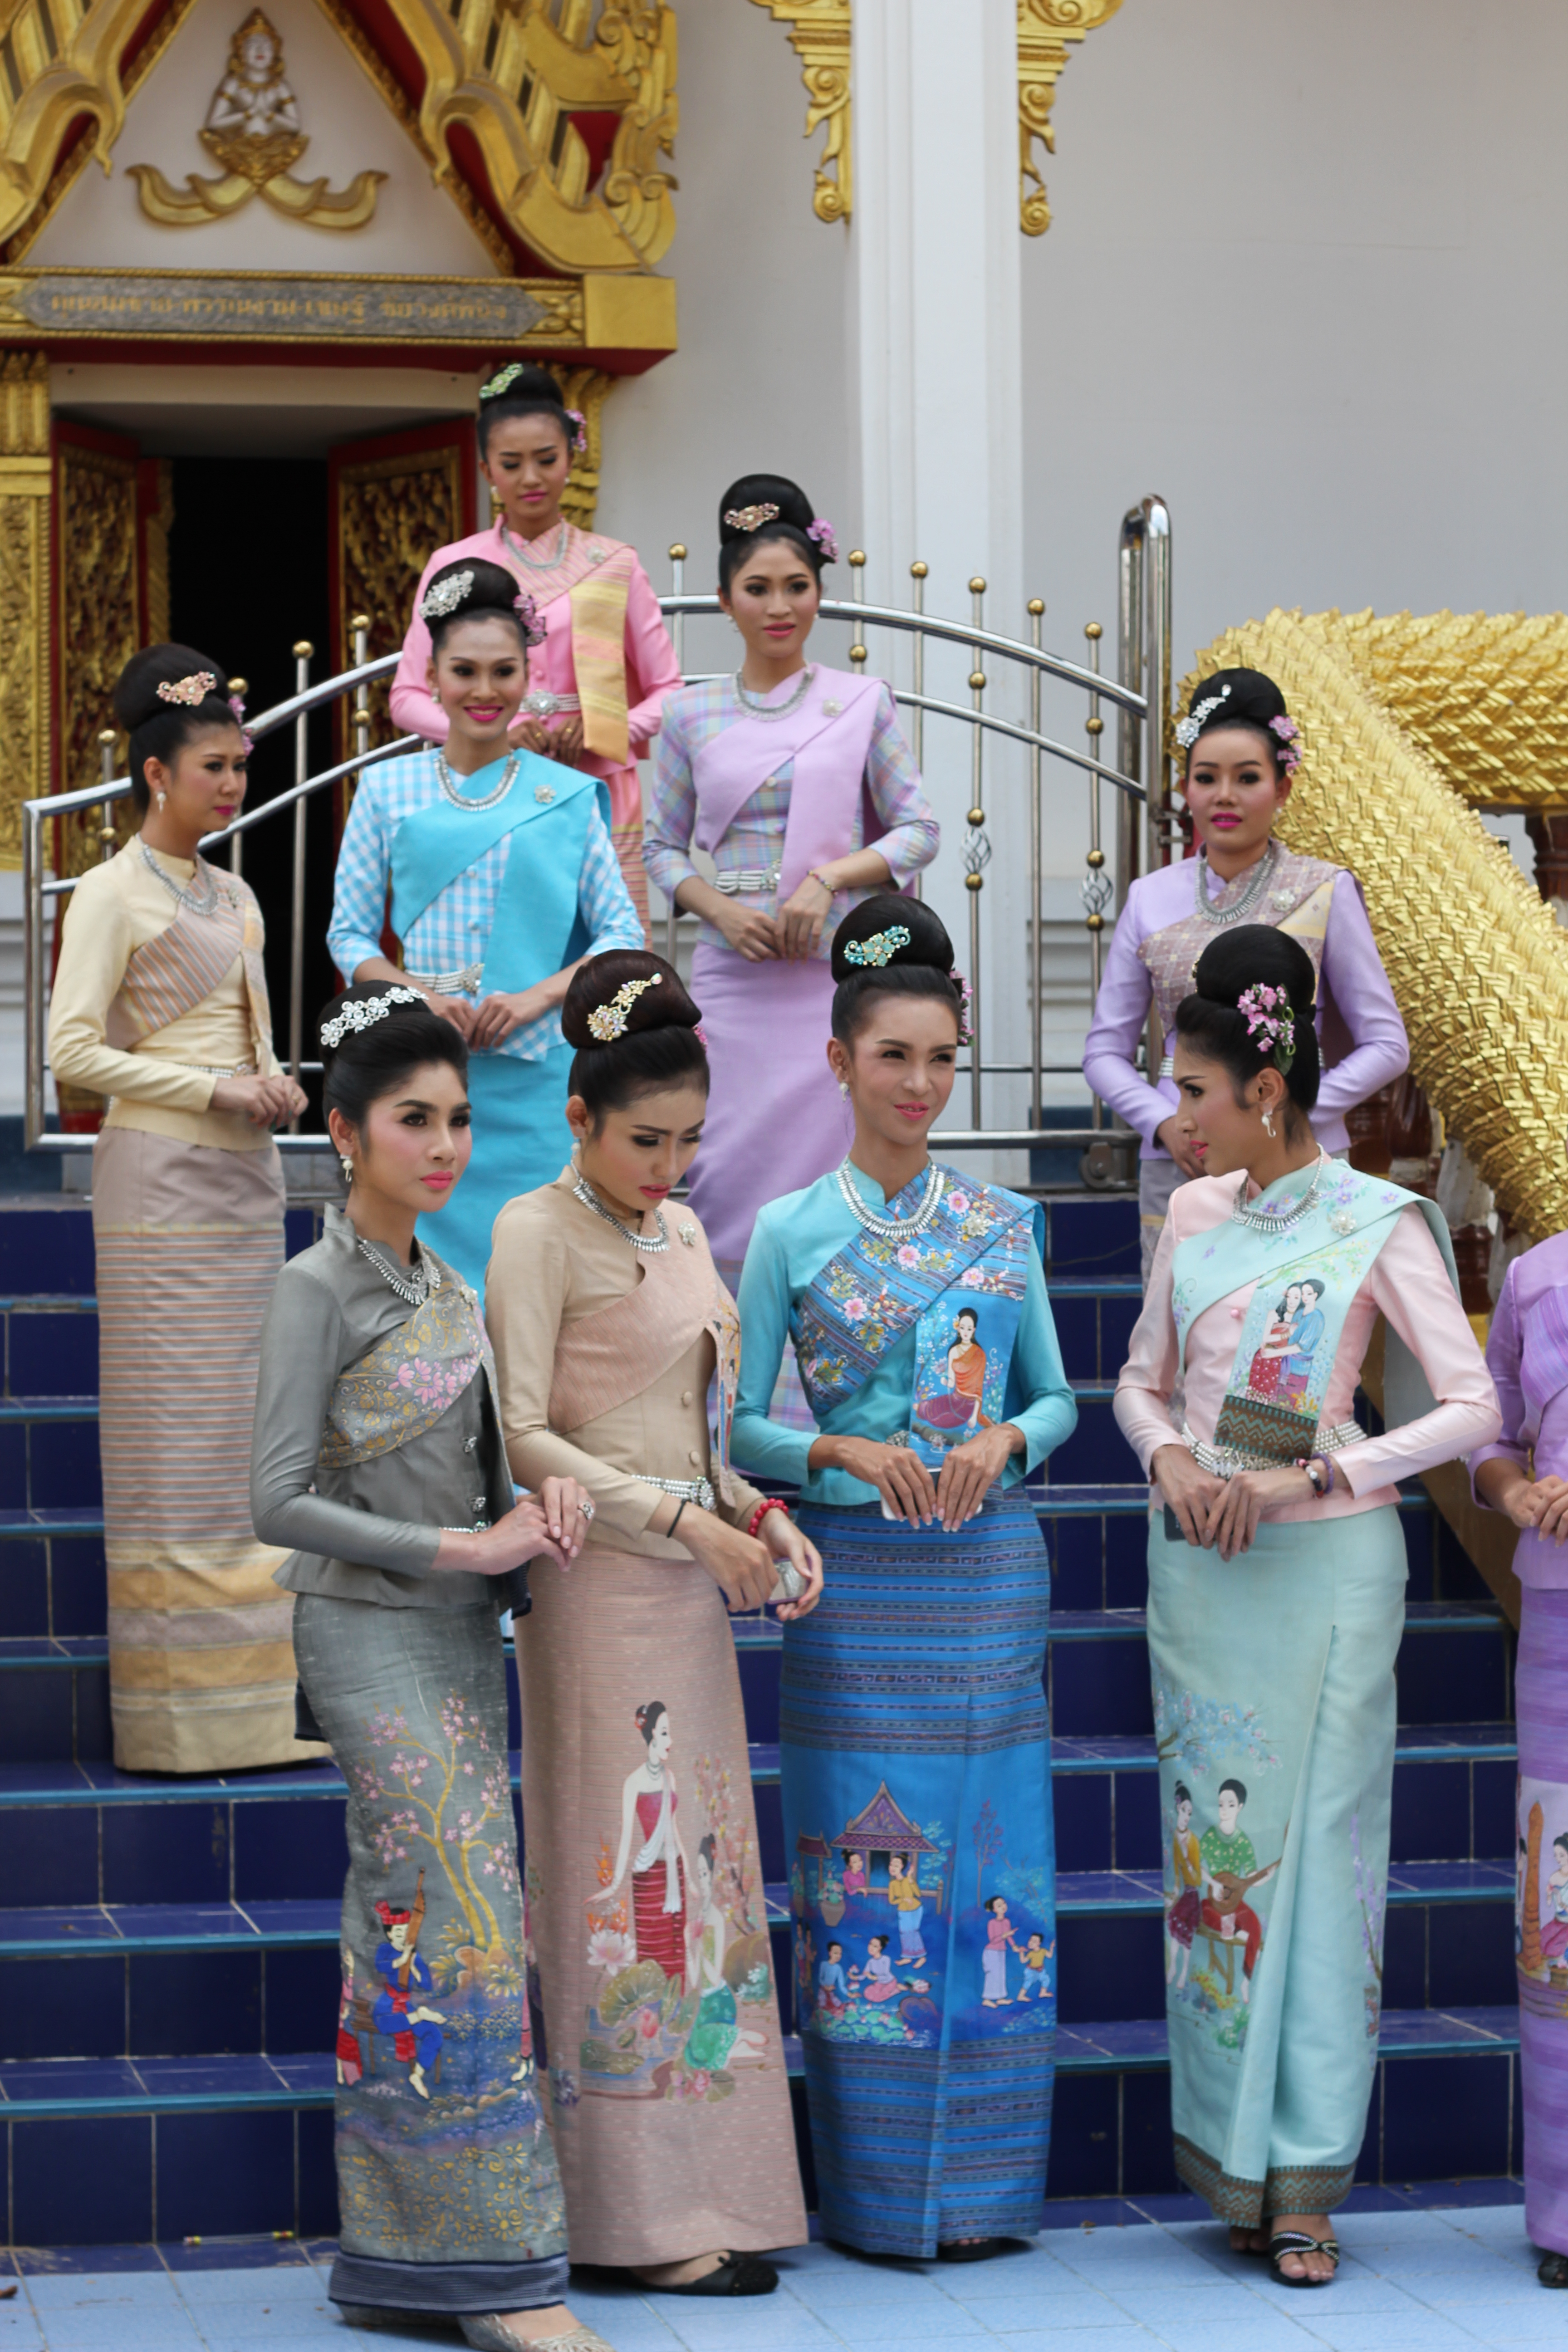 Isan dress for Hae Bang Fai parade in Suwannaphume, Roi Et Province, Thailand, by Look Lanh Muang Sriphume Club. Photo taken on June 6, 2015.